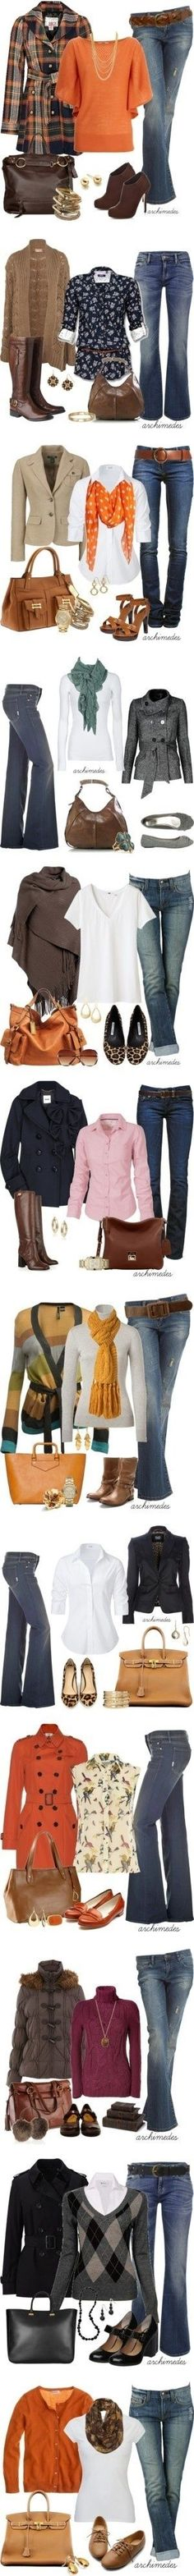 Are you wondering what to wear this fall? Want to know how to put together cute fall outfits? Well, this is your resource for style inspiration and fashion tips for all your fall outfit needs. Mode Outfits, Casual Outfits, Fashion Outfits, Womens Fashion, Fashion Purses, Jeans Fashion, Fashion Hair, Fall Winter Outfits, Autumn Winter Fashion